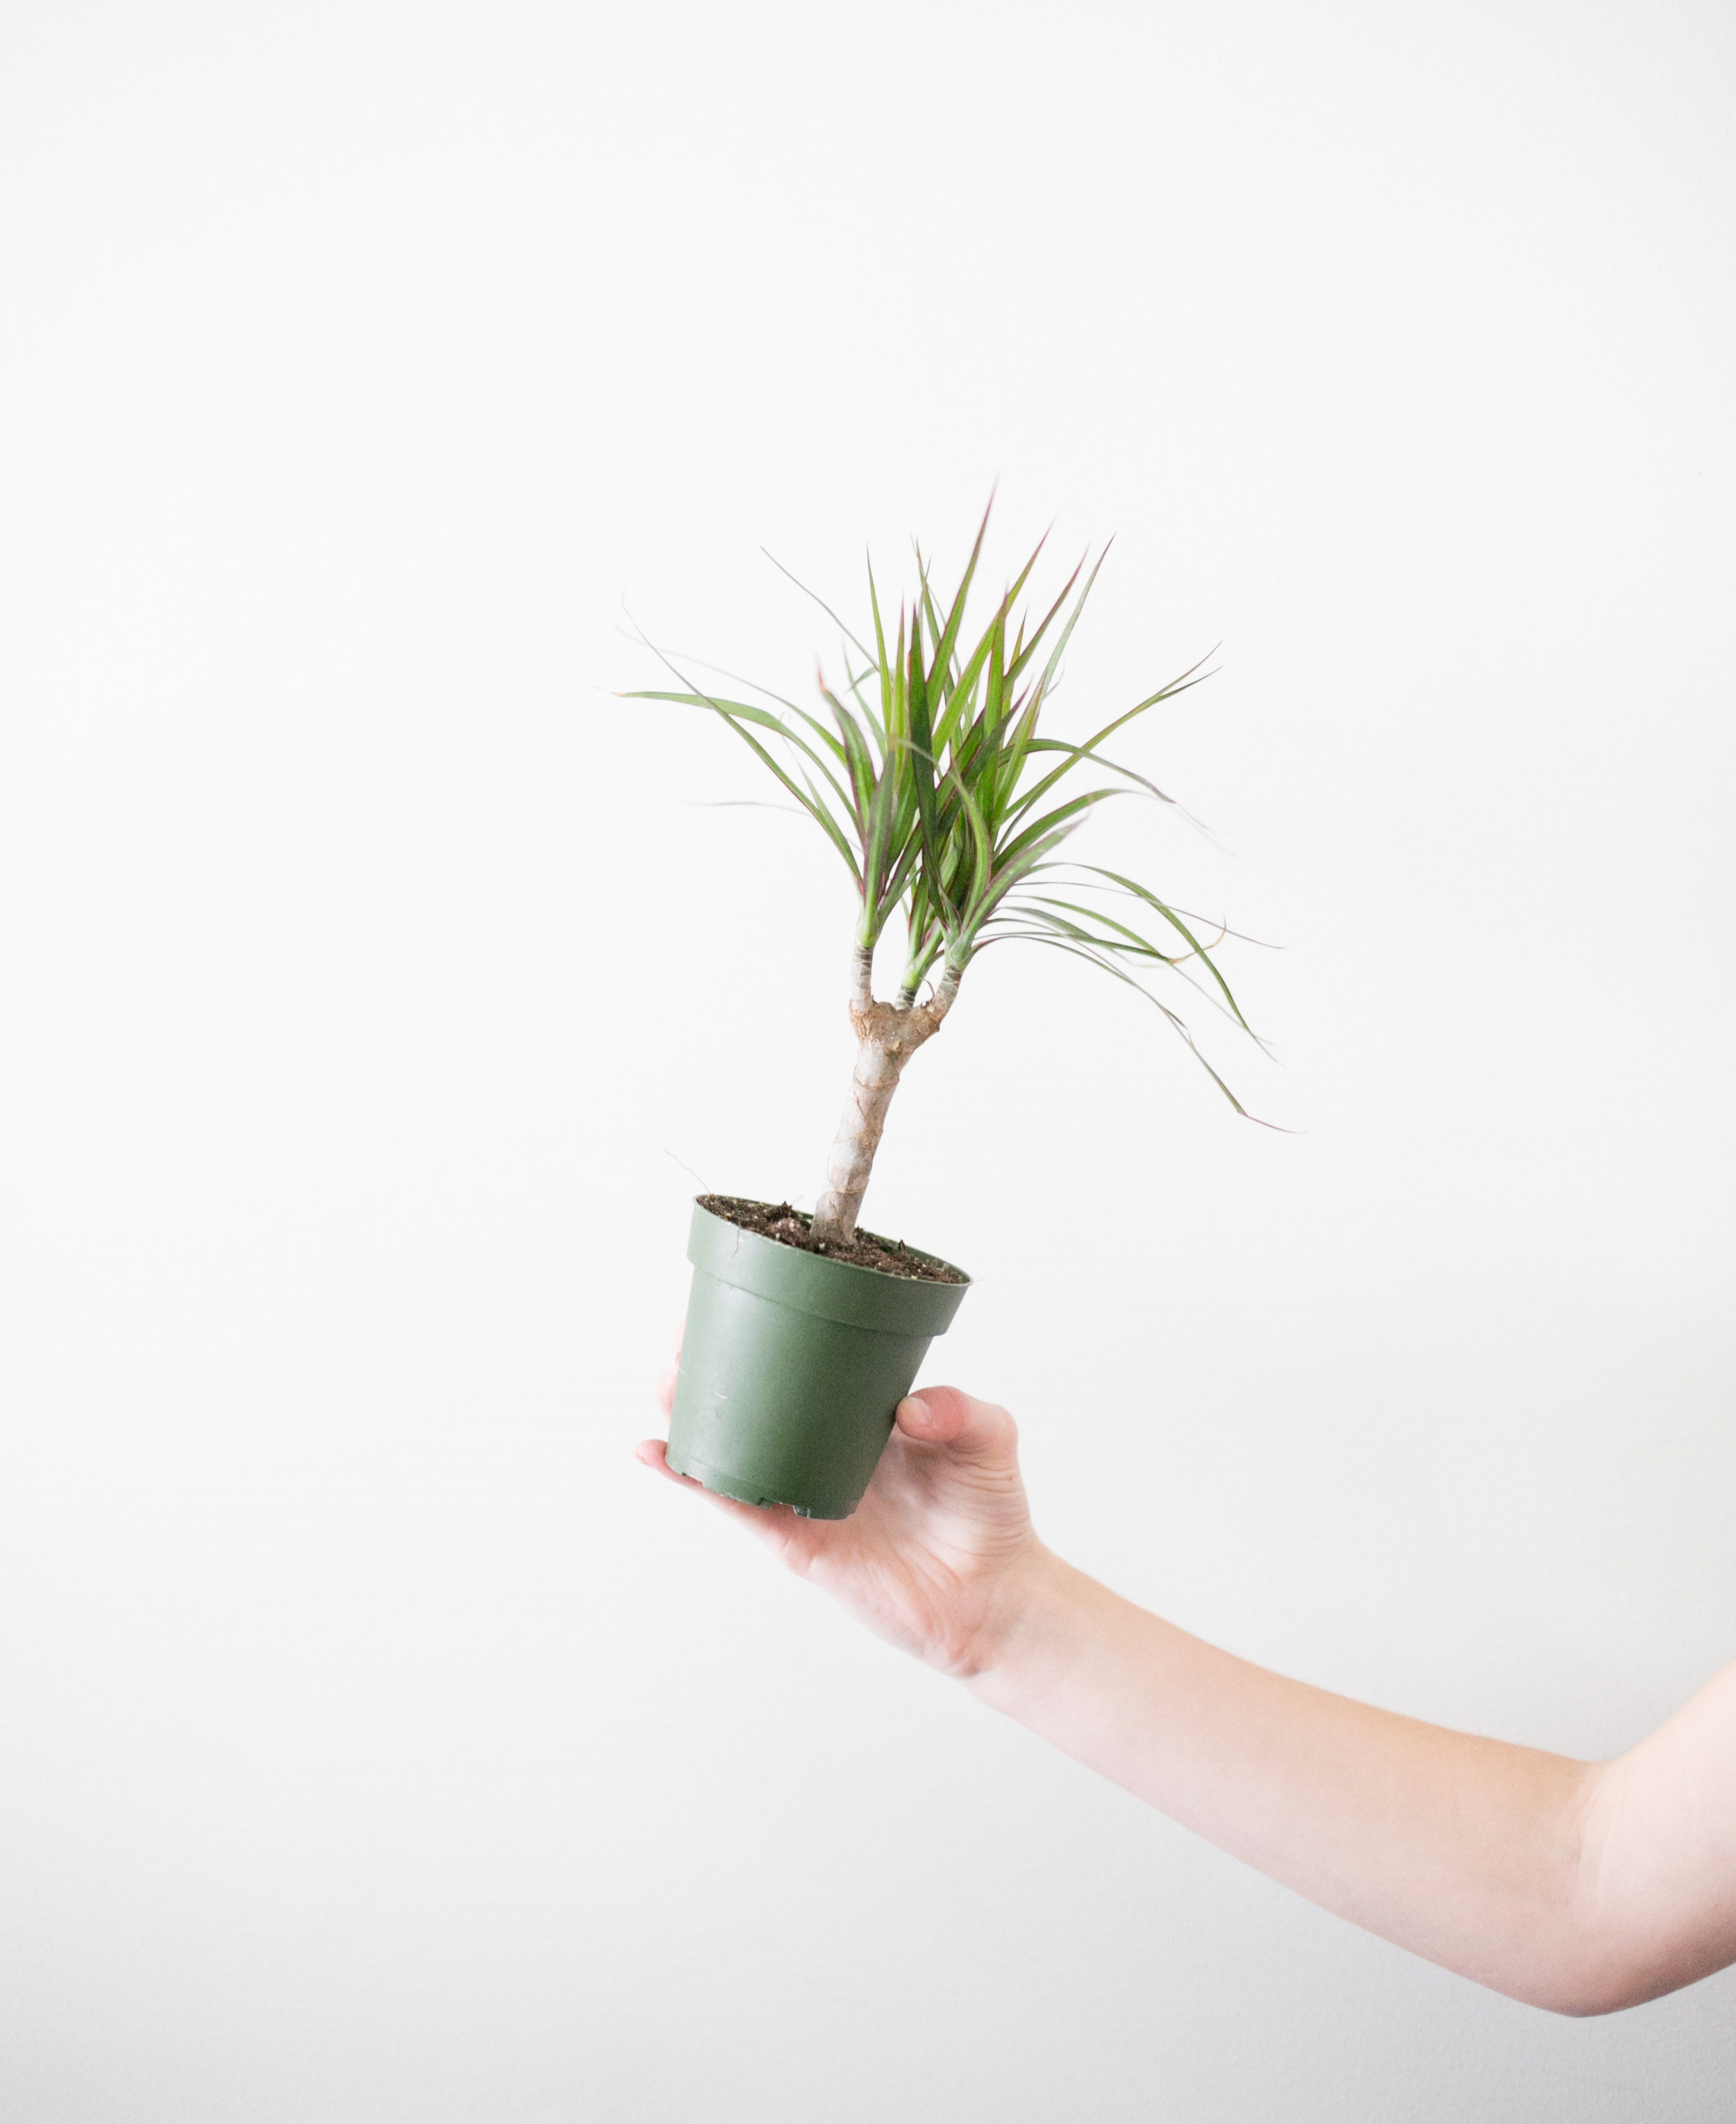 Did you know that the Madagascar Dragon Tree can grow in shade or sun?